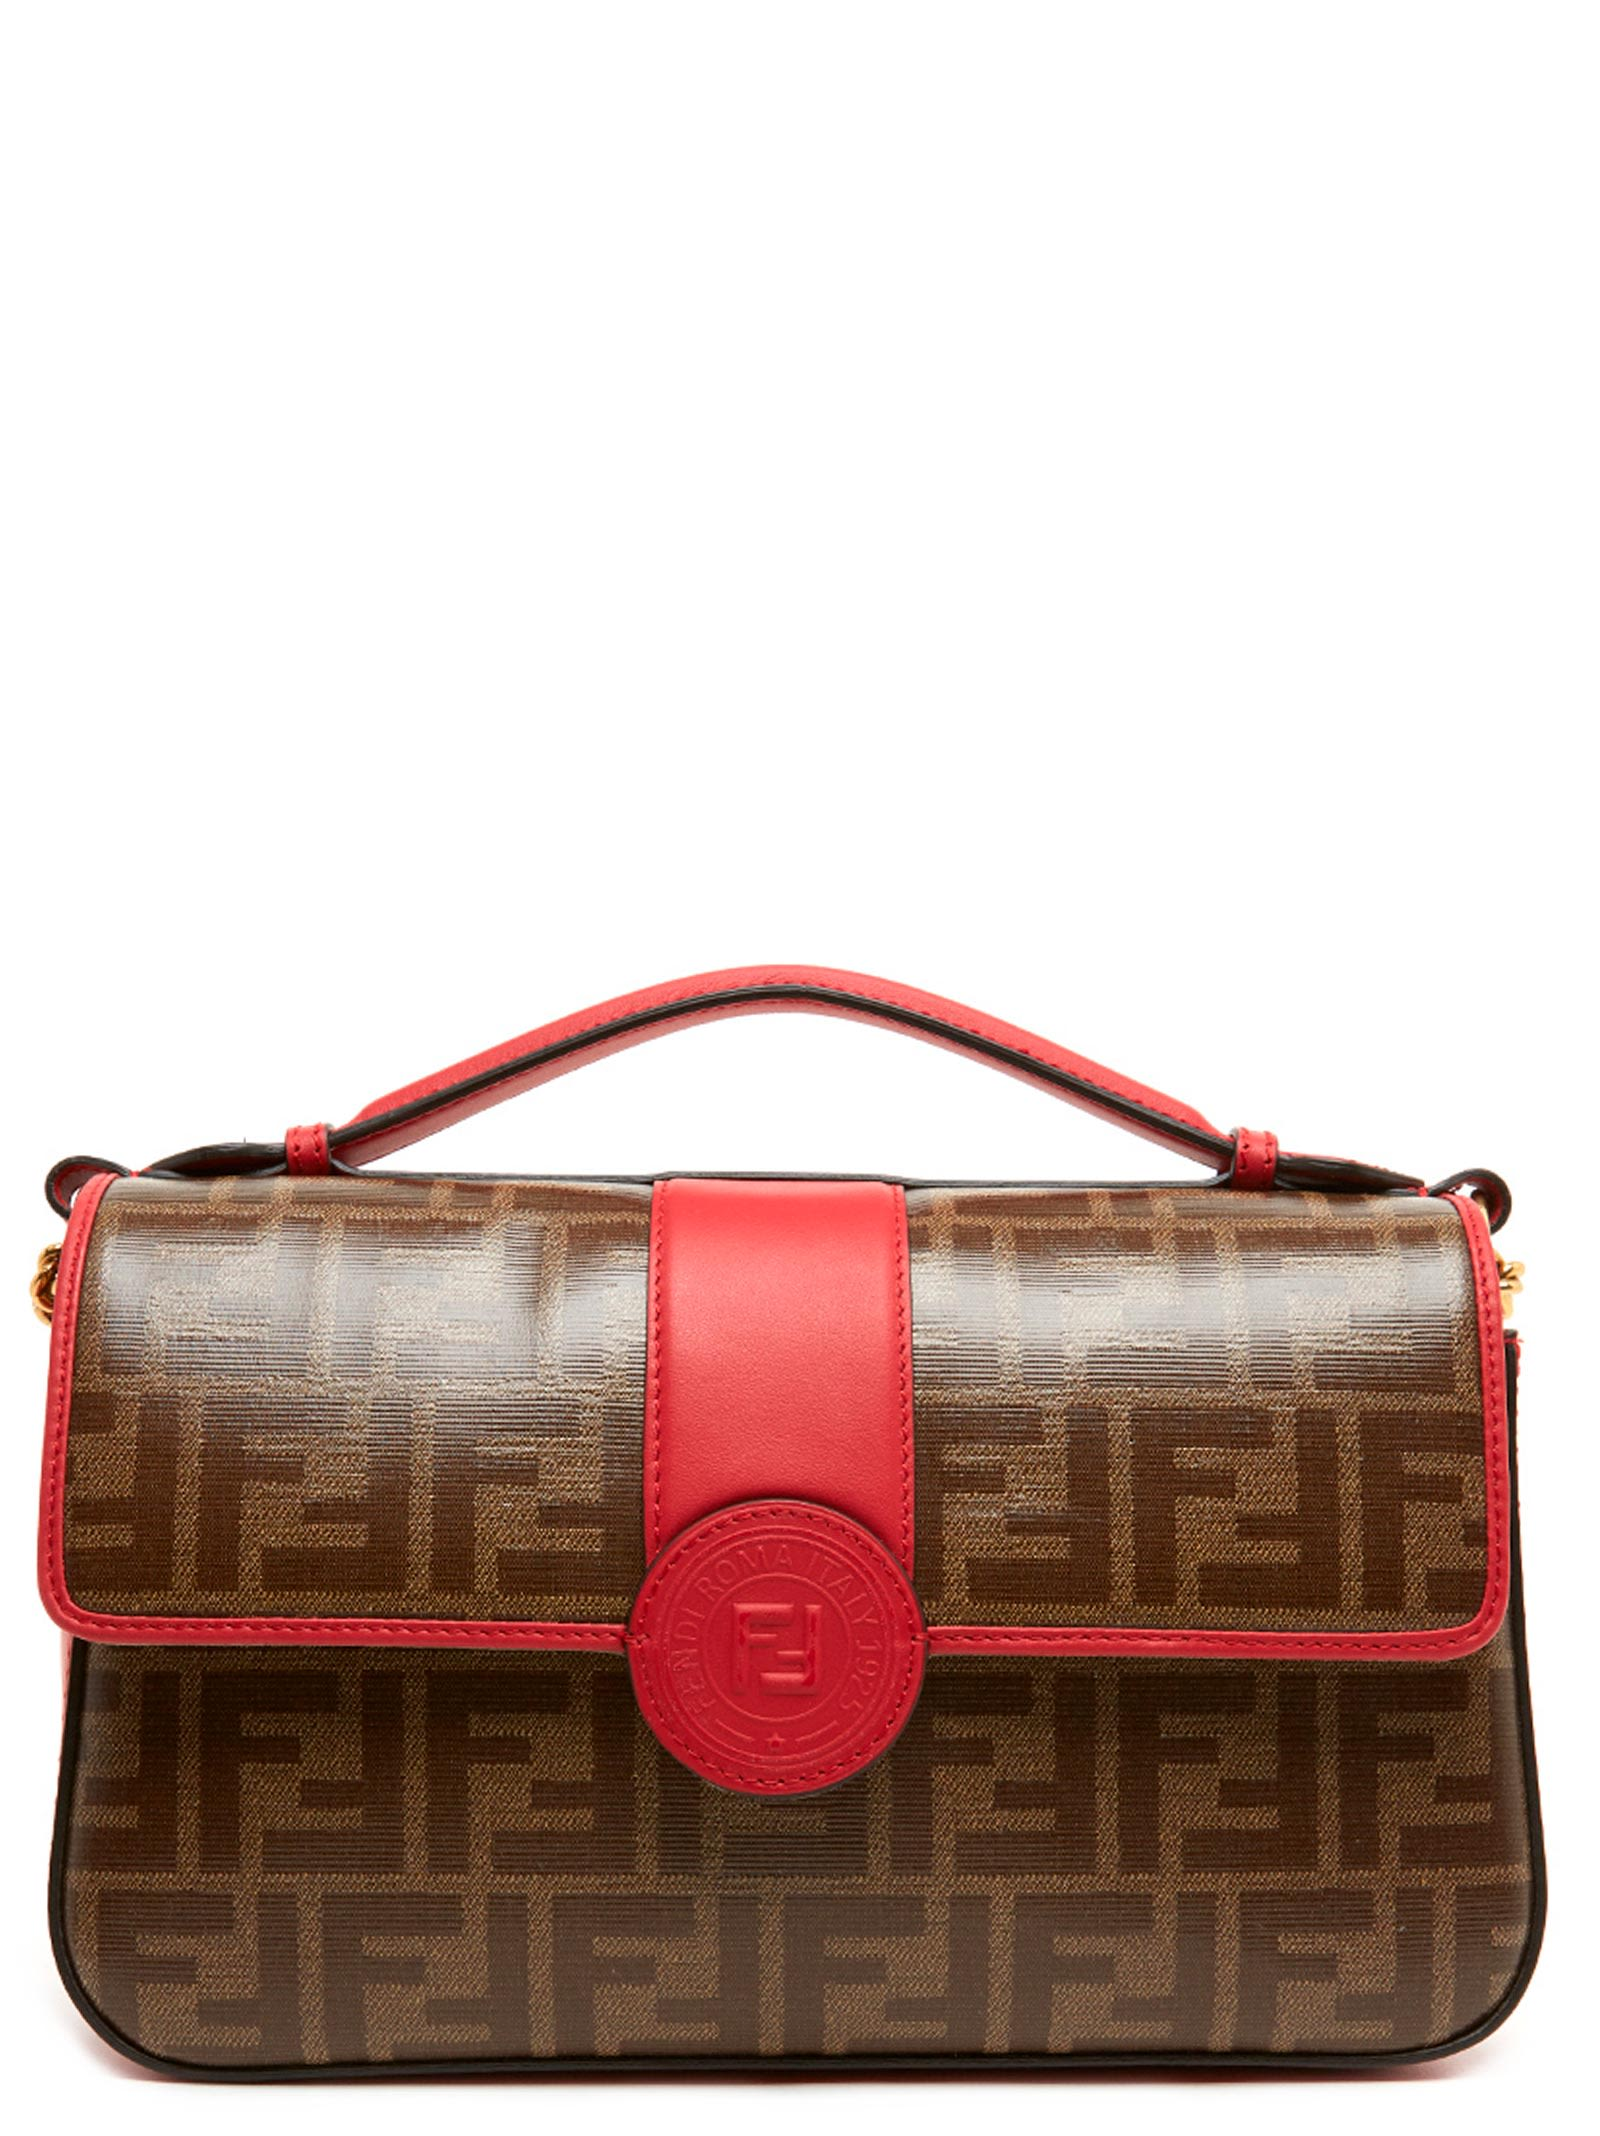 df50a531afe Fendi  Double Ff  Bag In Red   ModeSens